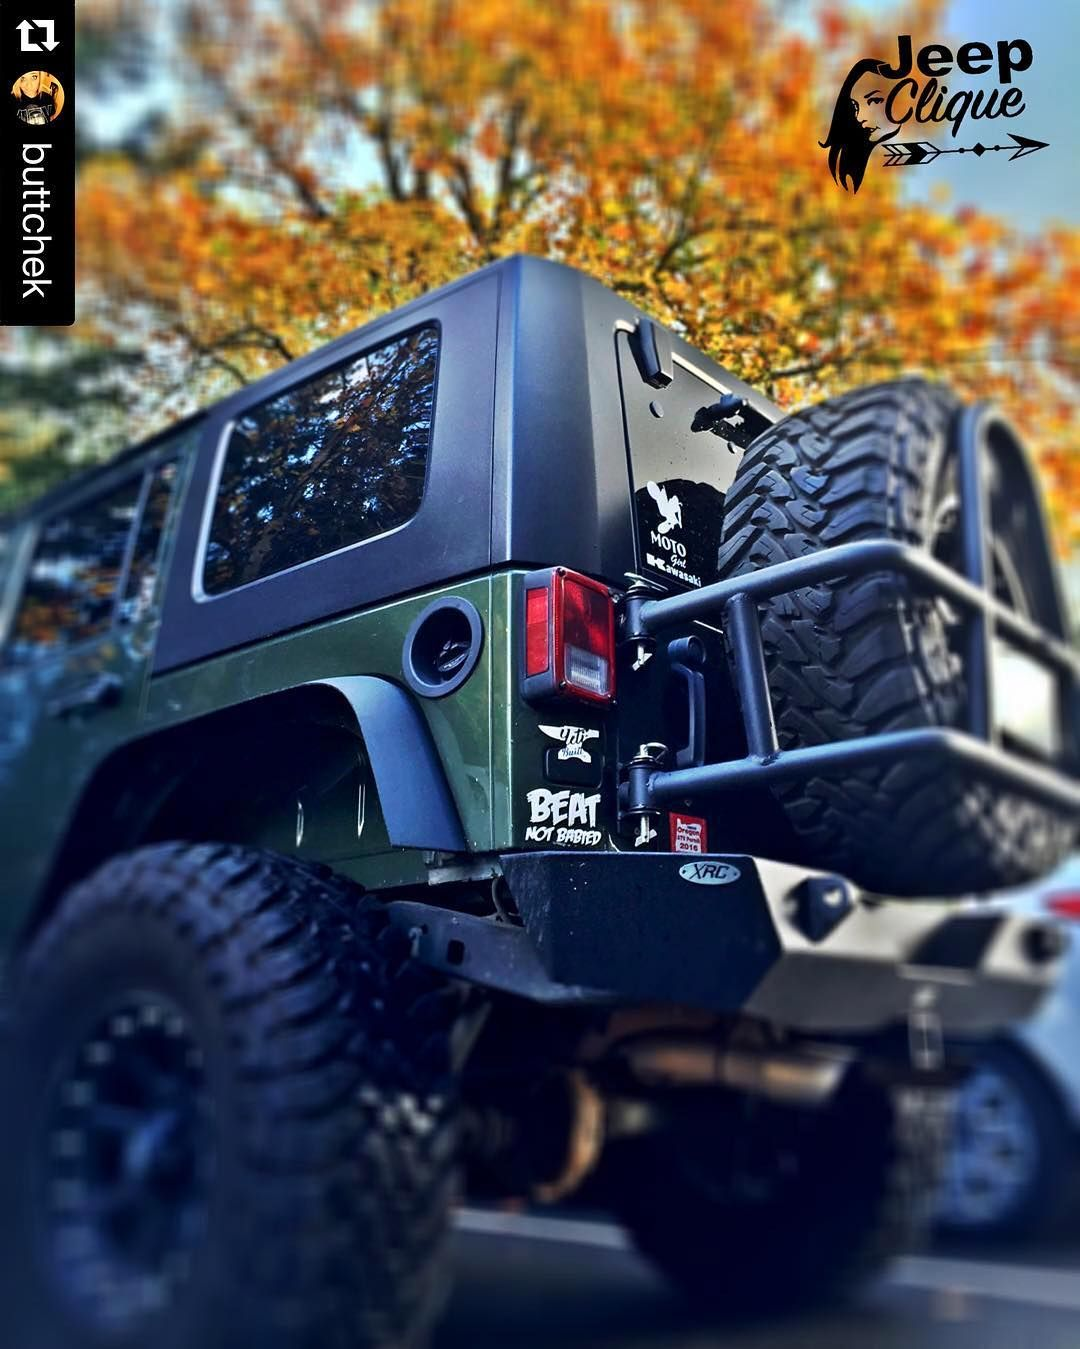 BADass Jeep from the beautiful @buttchek  #SexyAF #BadassJeepHer #JeepClique_OR #LiveAdventurously  #TushyTueaday #DatAssDoe #Jeep #JKU #Wrangler #Fall #Trees #ColorChanging #YetiBuiltFam #BeatNotBabied #MotoChick #Kawasaki #Oregon #PNW #XRC #XDAddicts #JeepClique #GenRight #JeepPhotography #MyLove #MyObsession by jeepclique